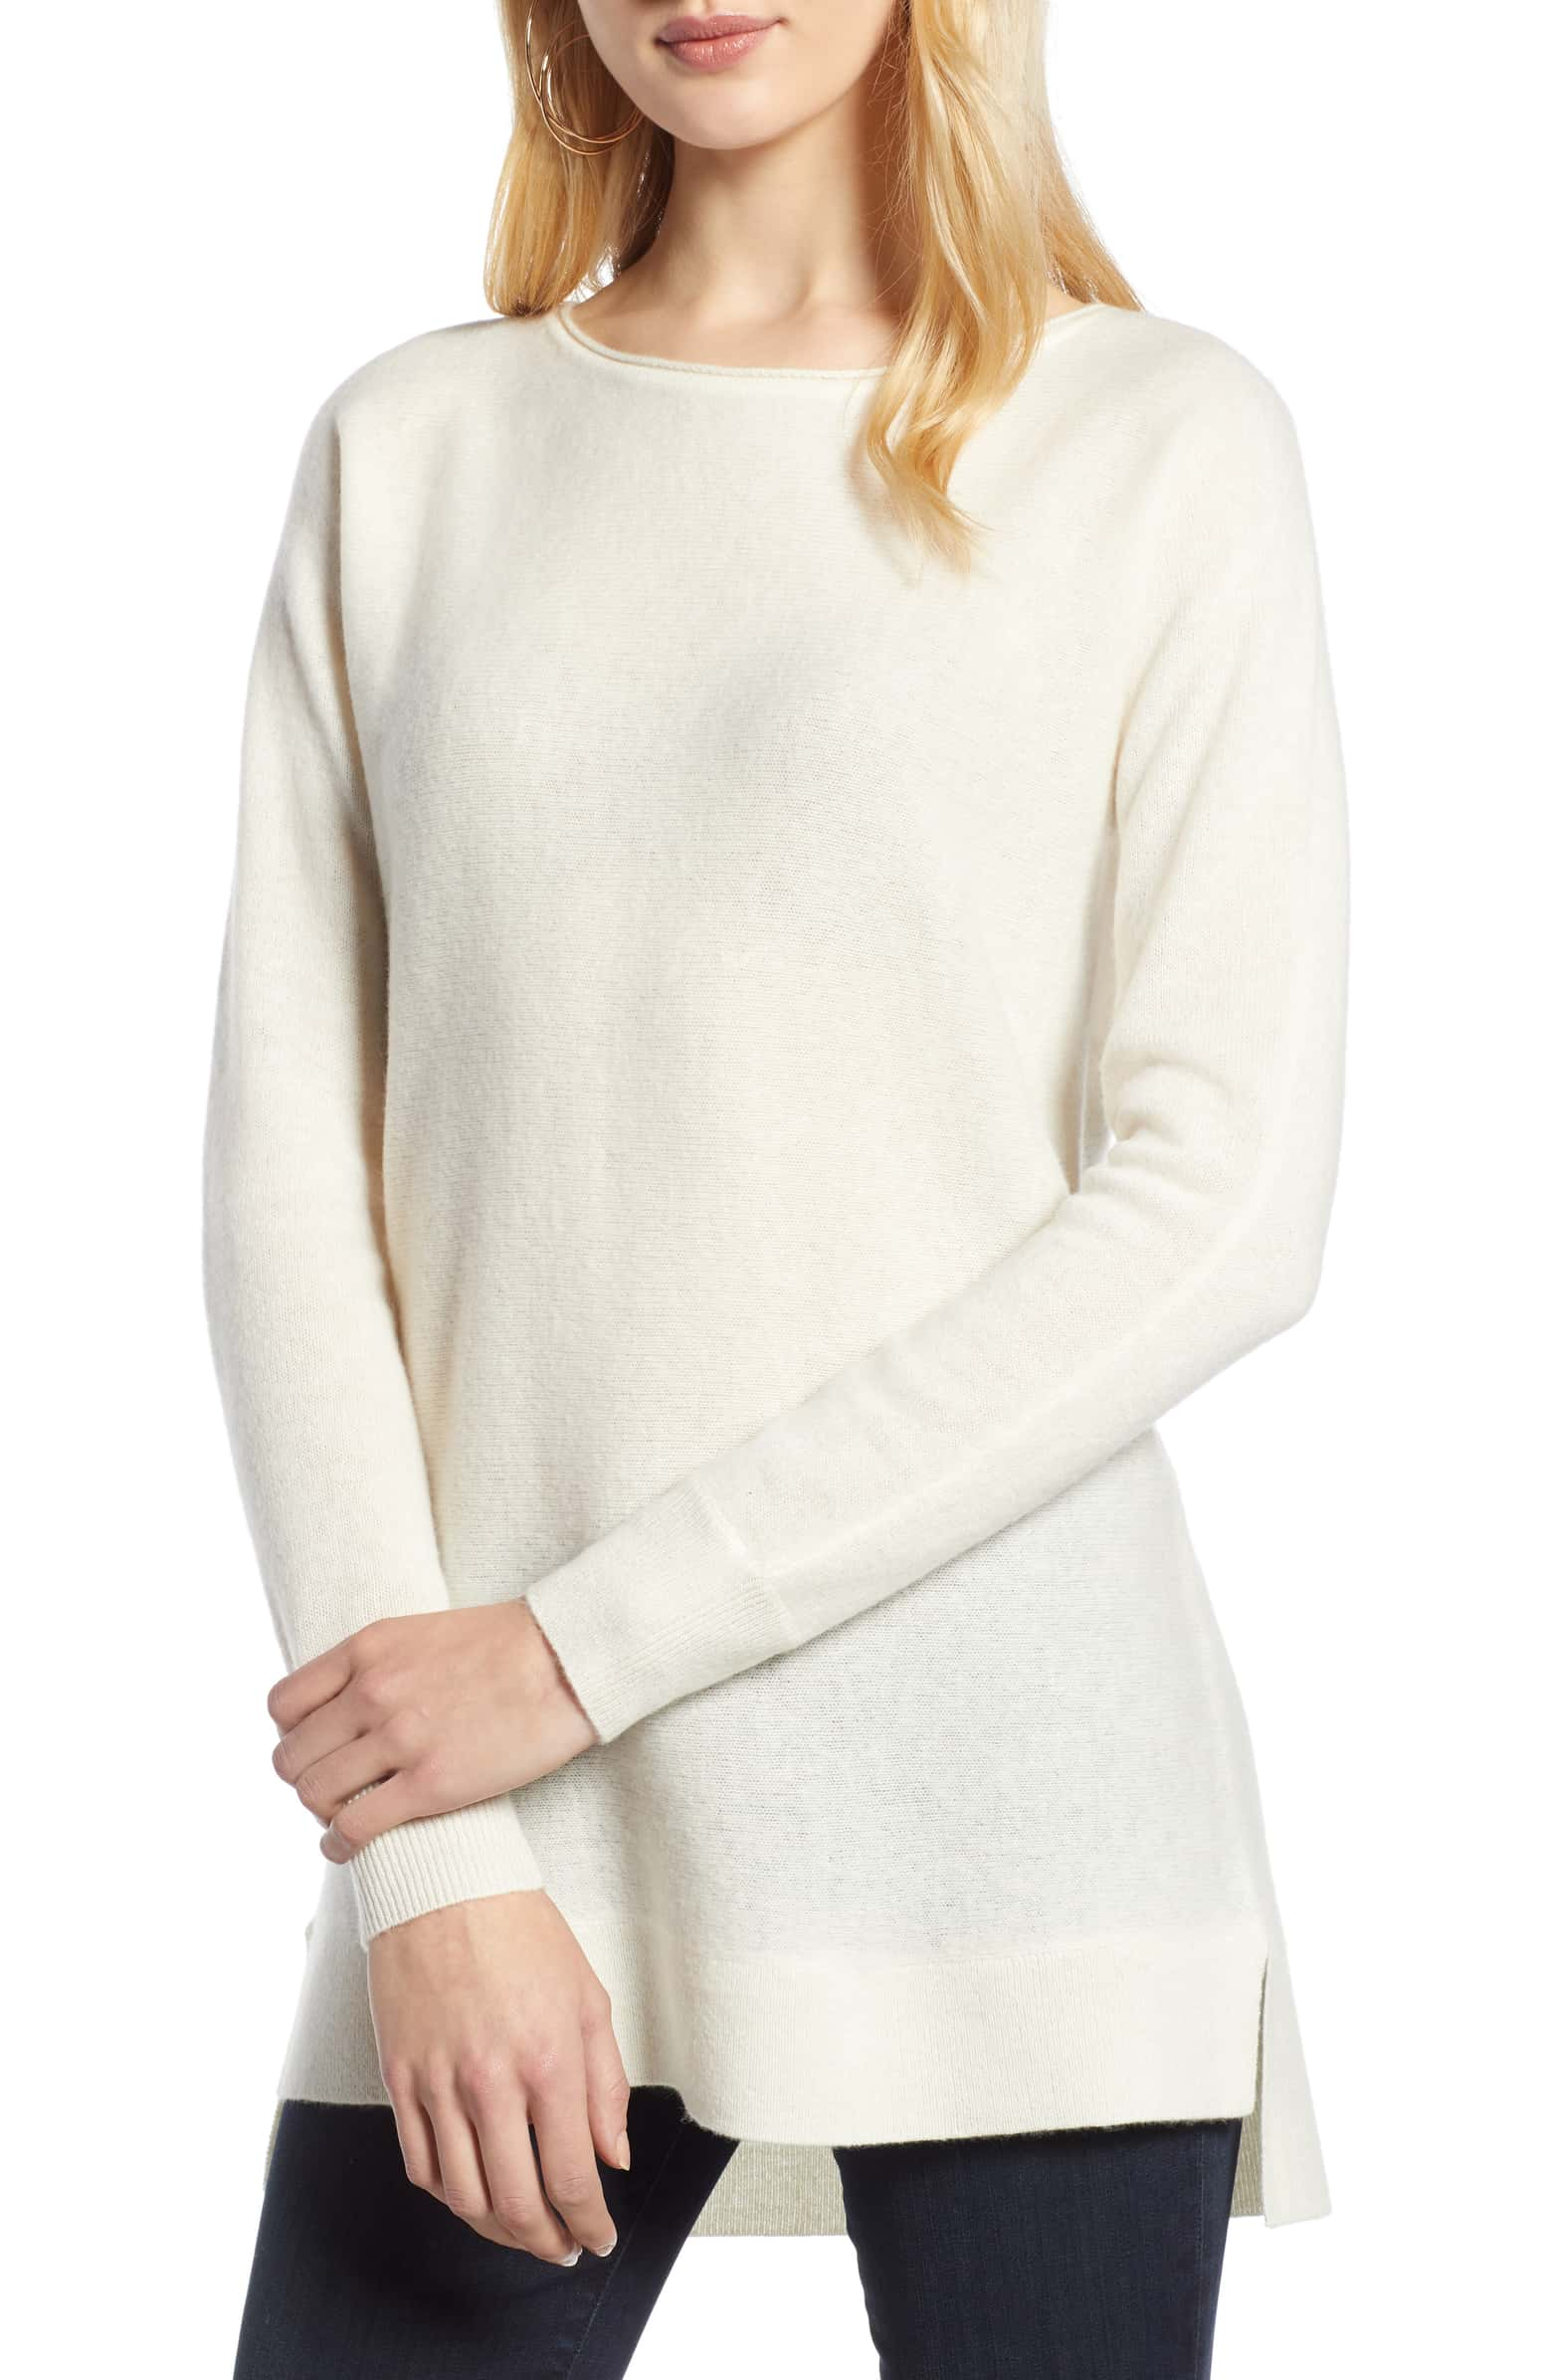 Nordstrom: Cashmere Tunic Sweater